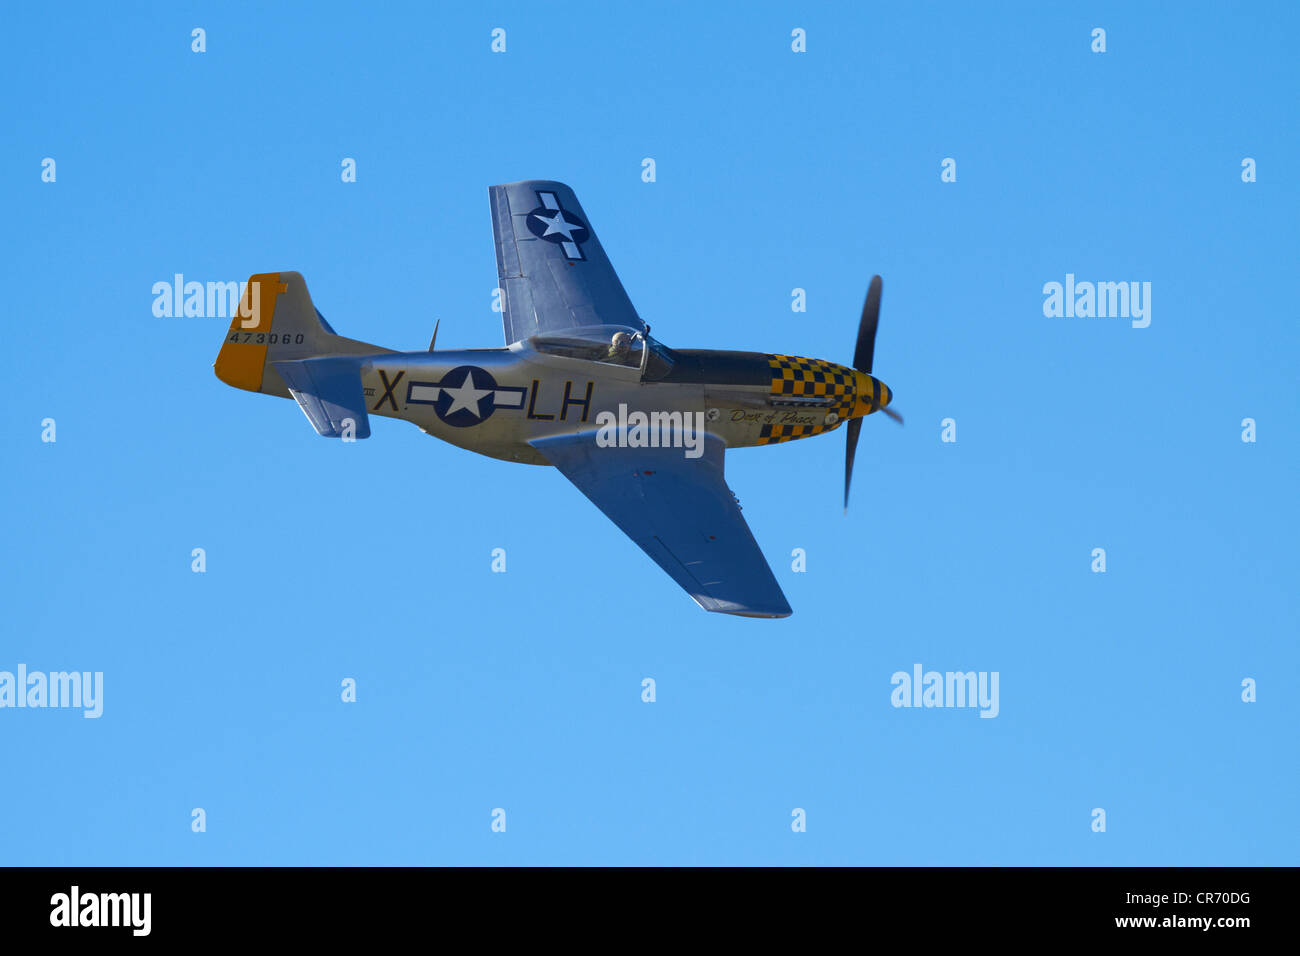 P-51 Mustang - American Fighter Plane - Stock Image